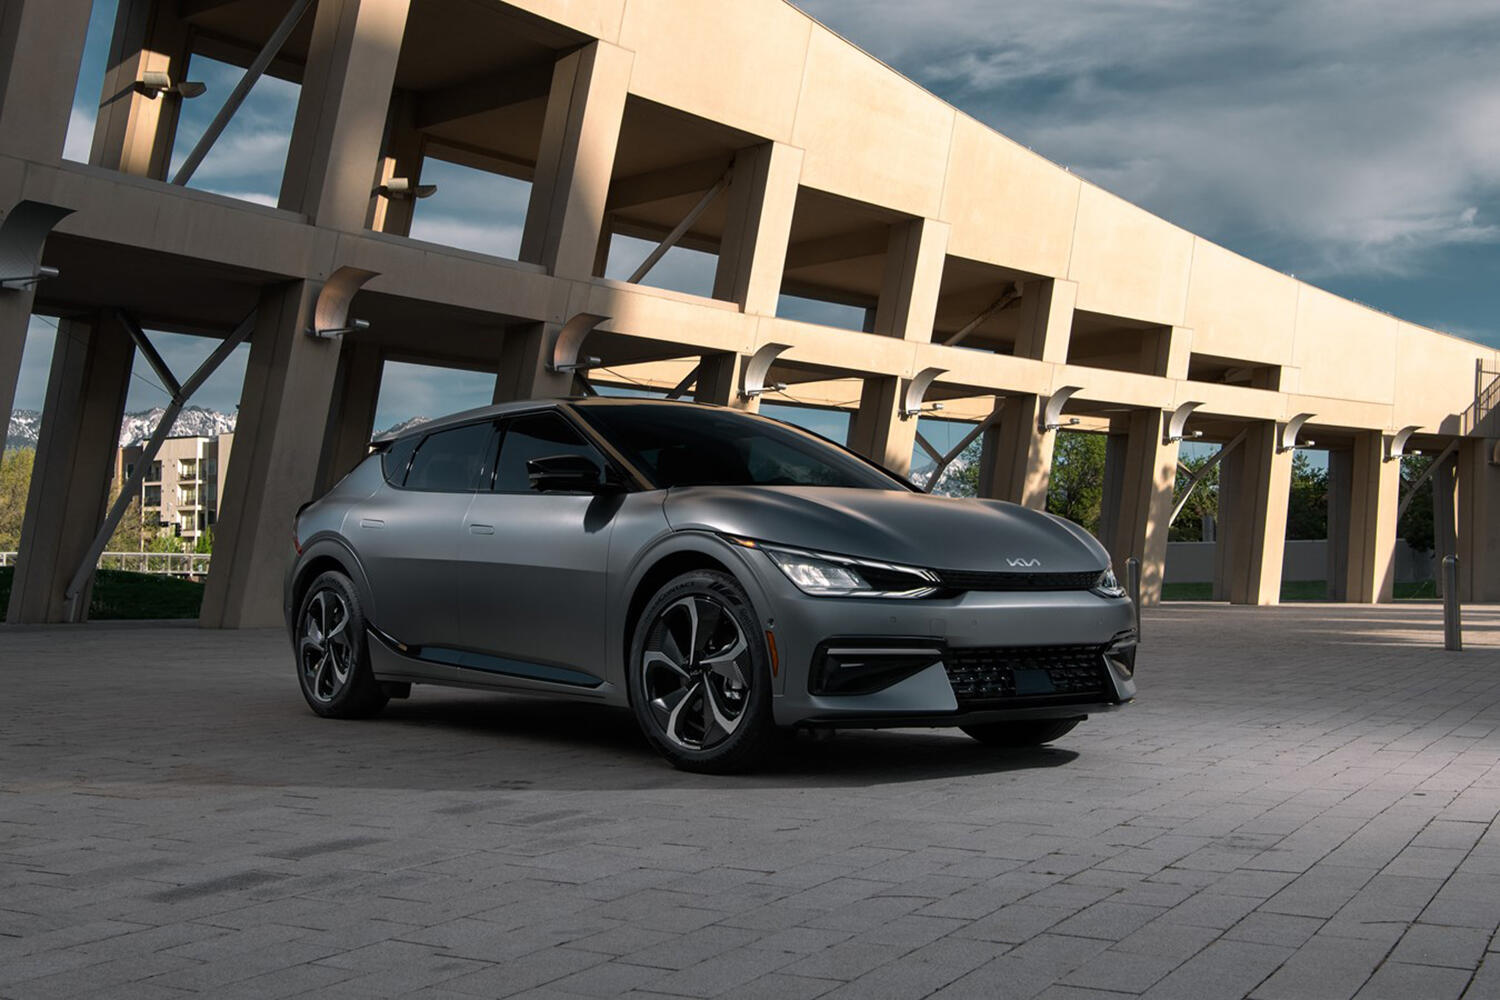 2022 Kia EV6 revealed for US: Lands early next year with 300 miles of range  - Roadshow